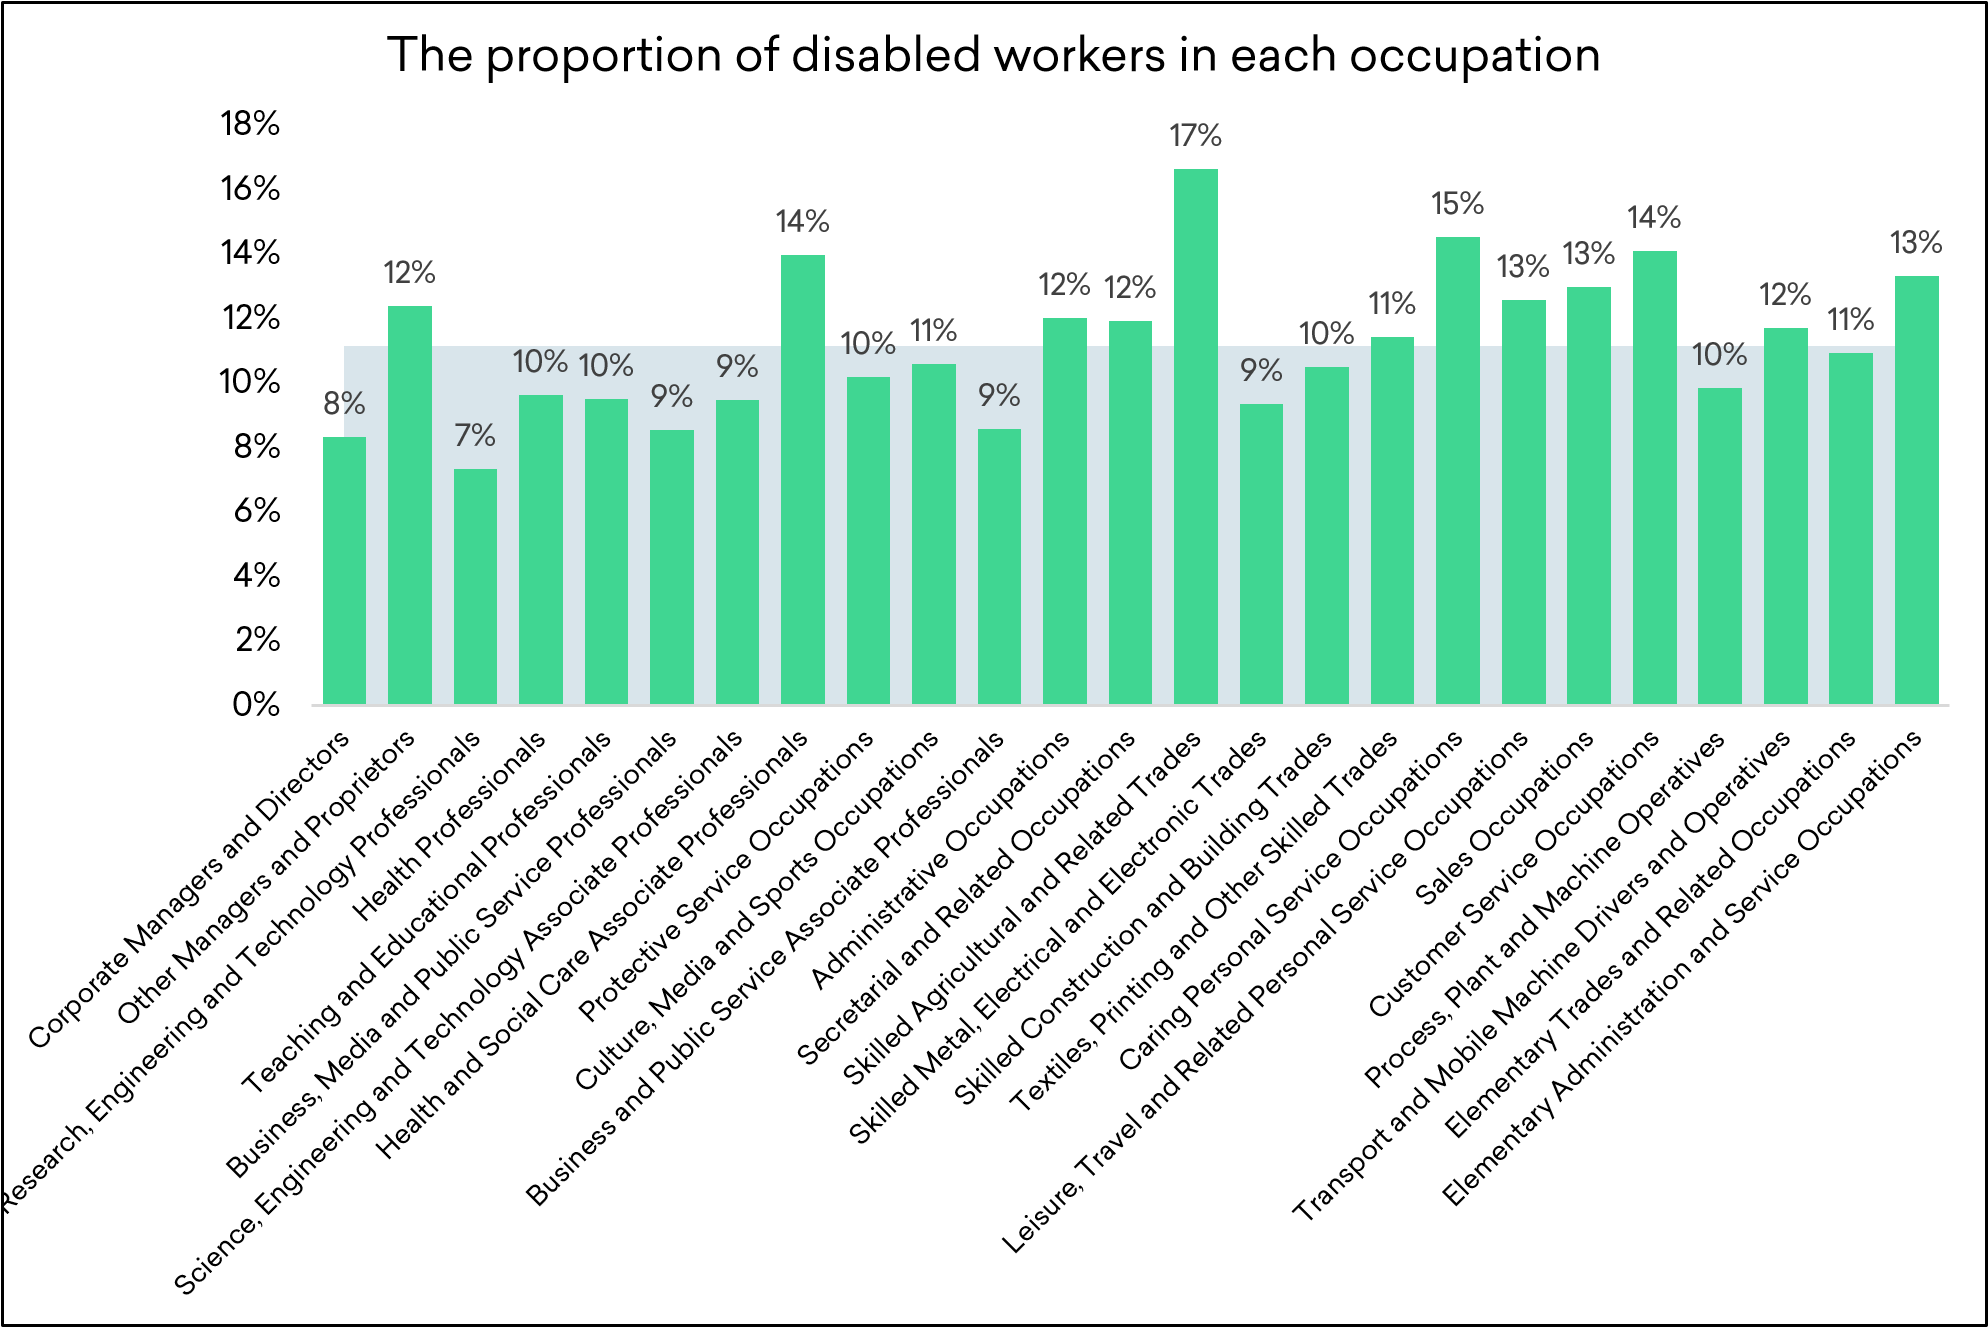 The proportion of disabled workers in each occupation